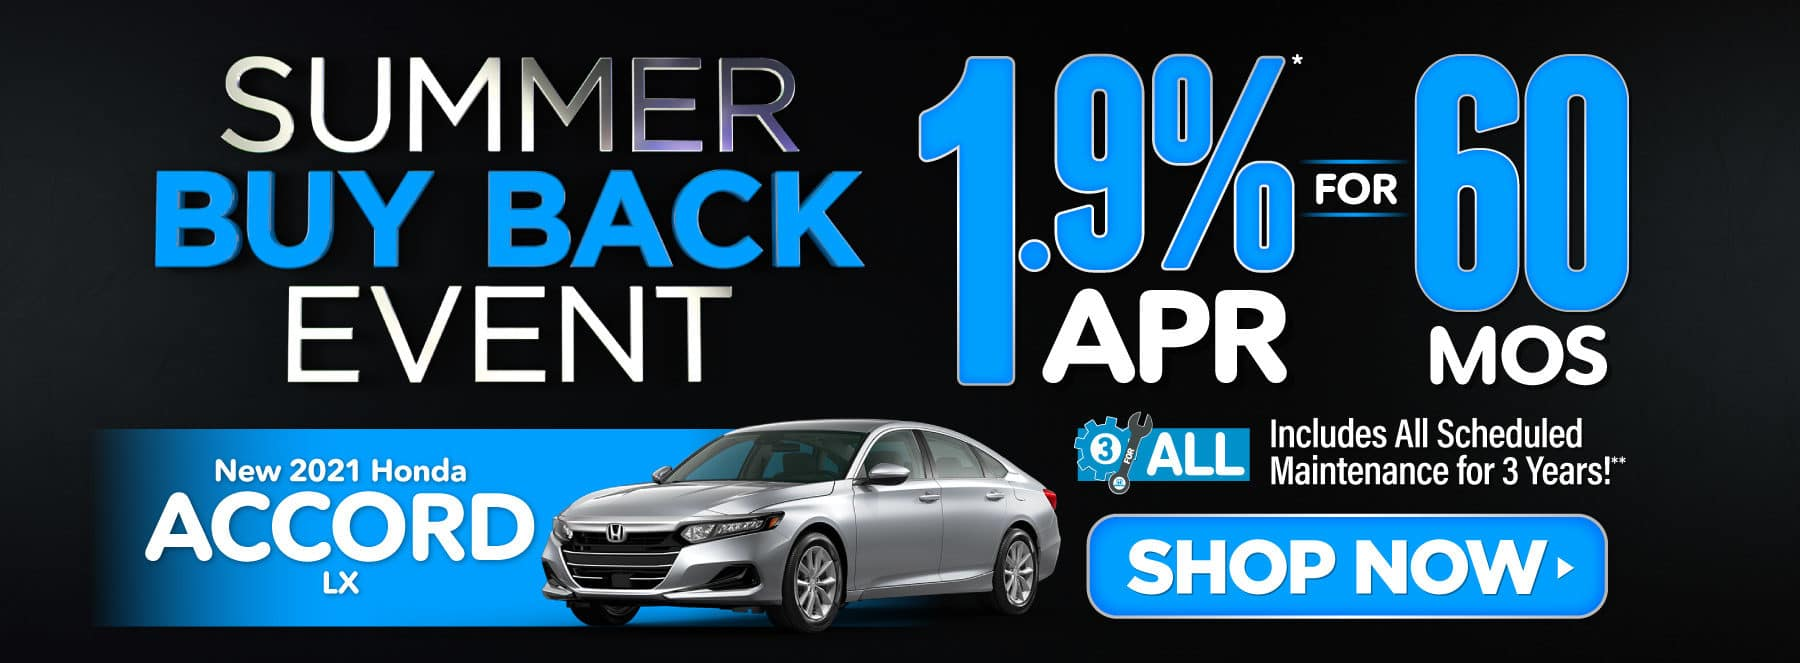 New 2021 Honda Accord - 1.9% APR for 60 months - Shop Now